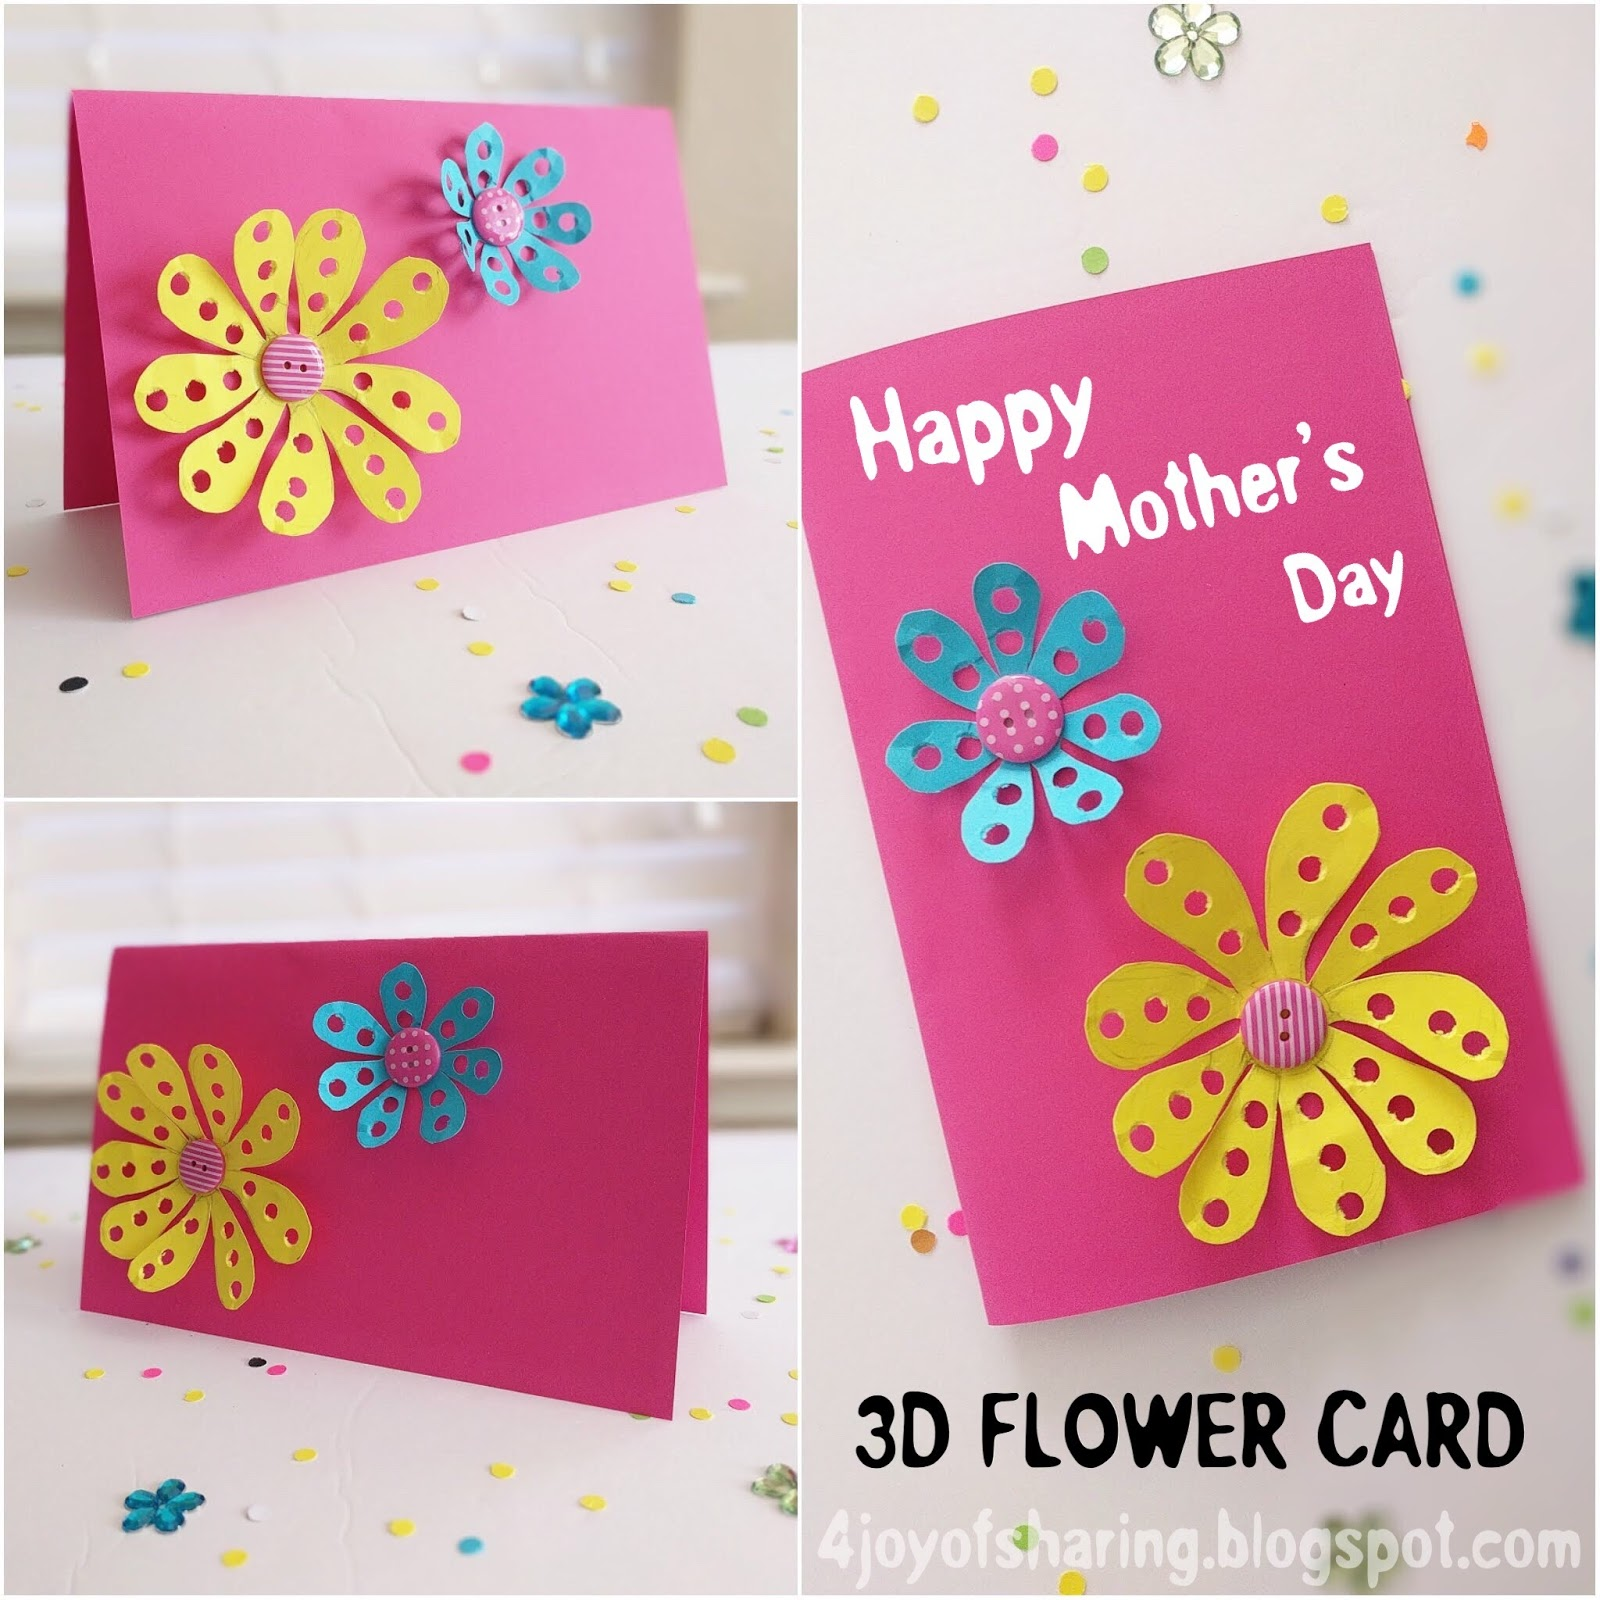 The Joy Of Sharing Diy Mother S Day 3d Flower Card